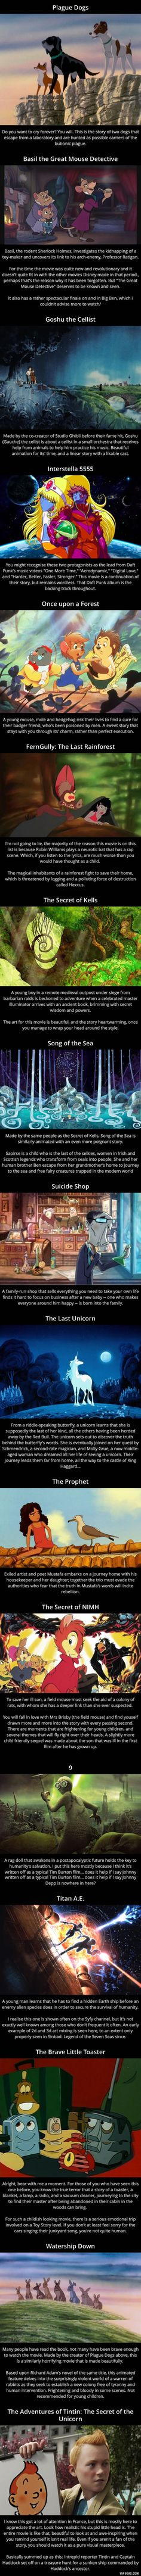 Underappreciated (or overlooked) animated movies